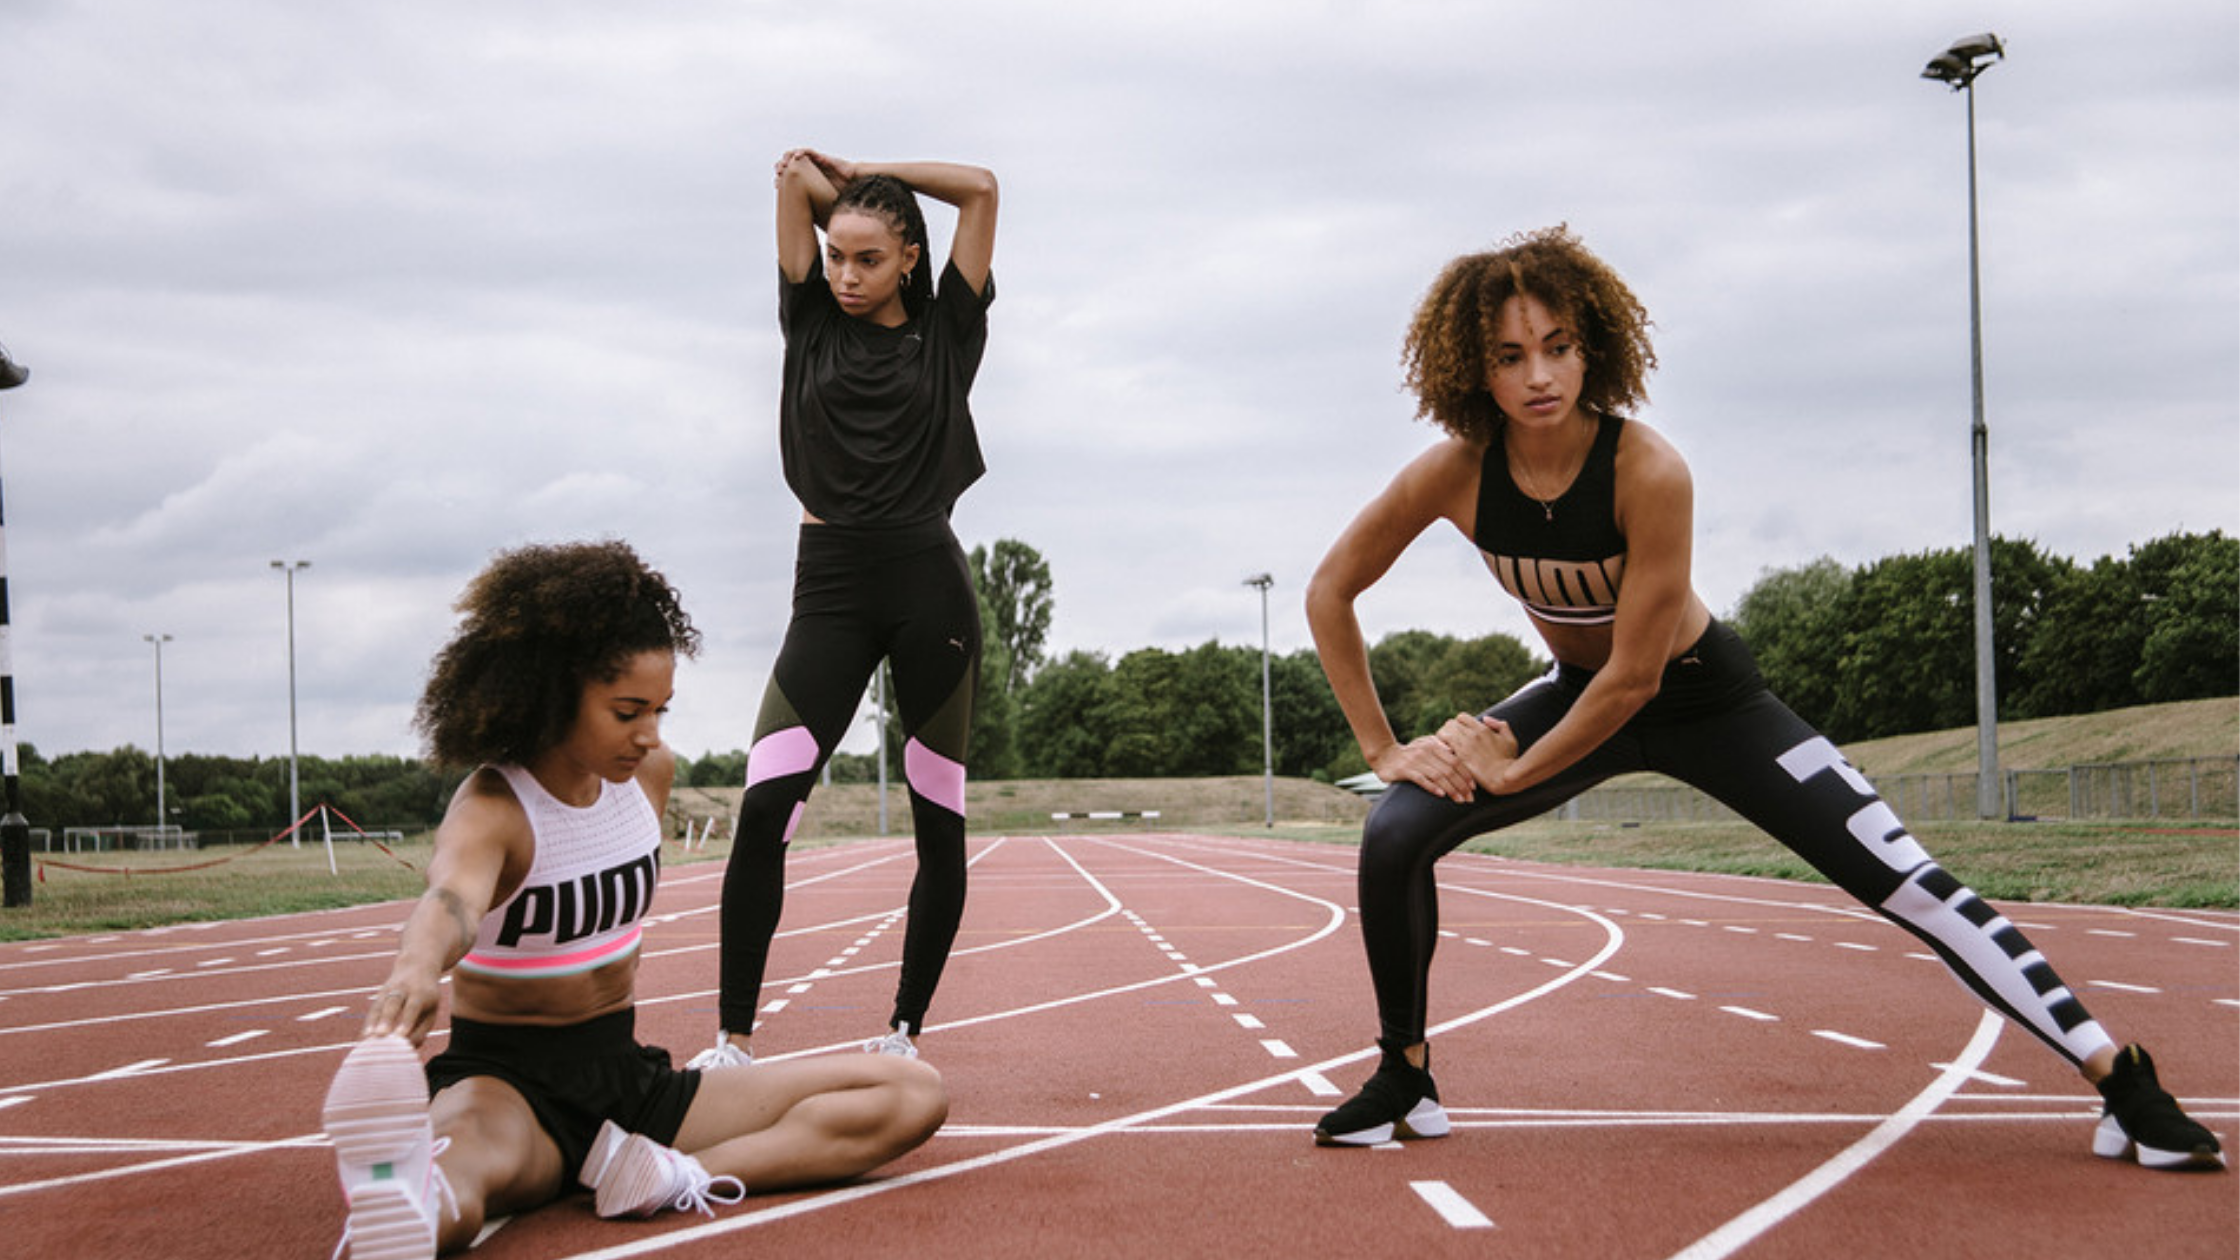 Puma used tech to dominate the sportswear market in India. How?